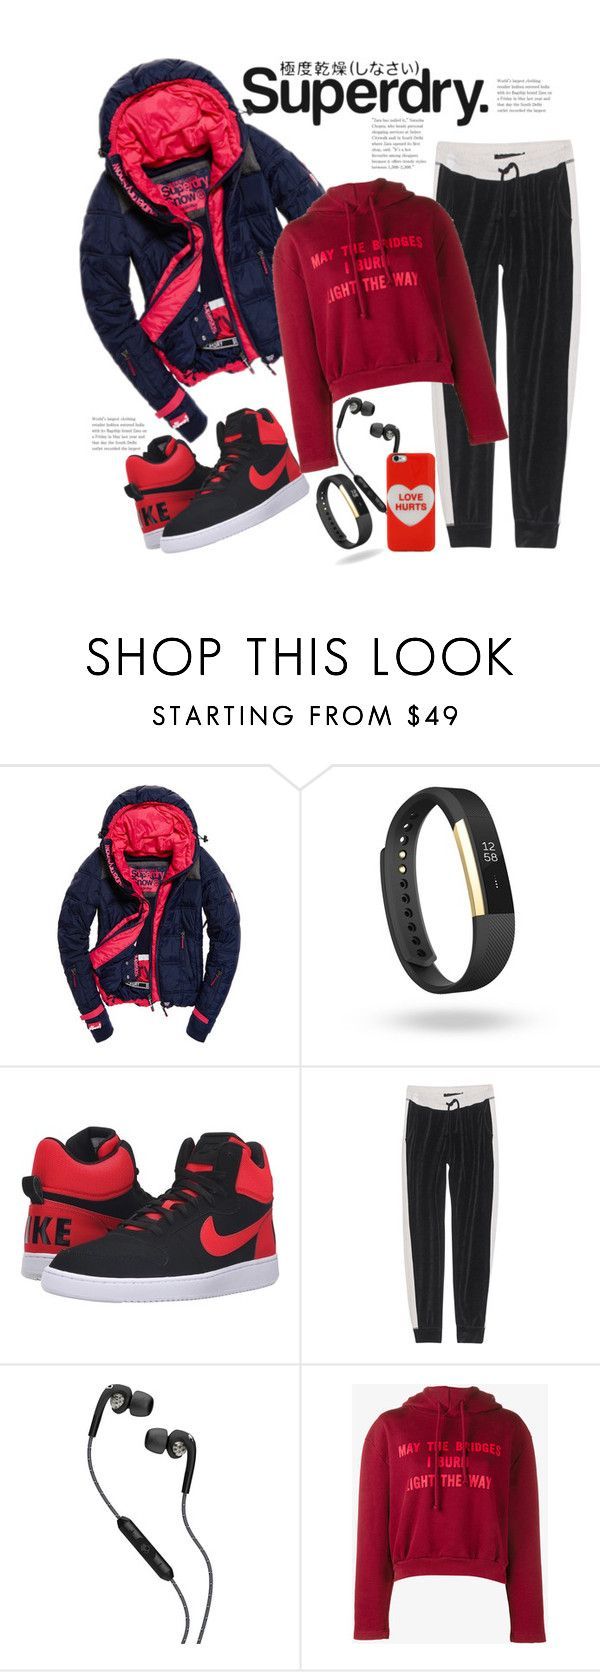 """Warmly Cool & Superdry"" by hattie4palmerstone ❤ liked on Polyvore featuring Superdry, Fitbit, NIKE, True Religion, Skullcandy, Vetements, Marc Jacobs and MySuperdry"